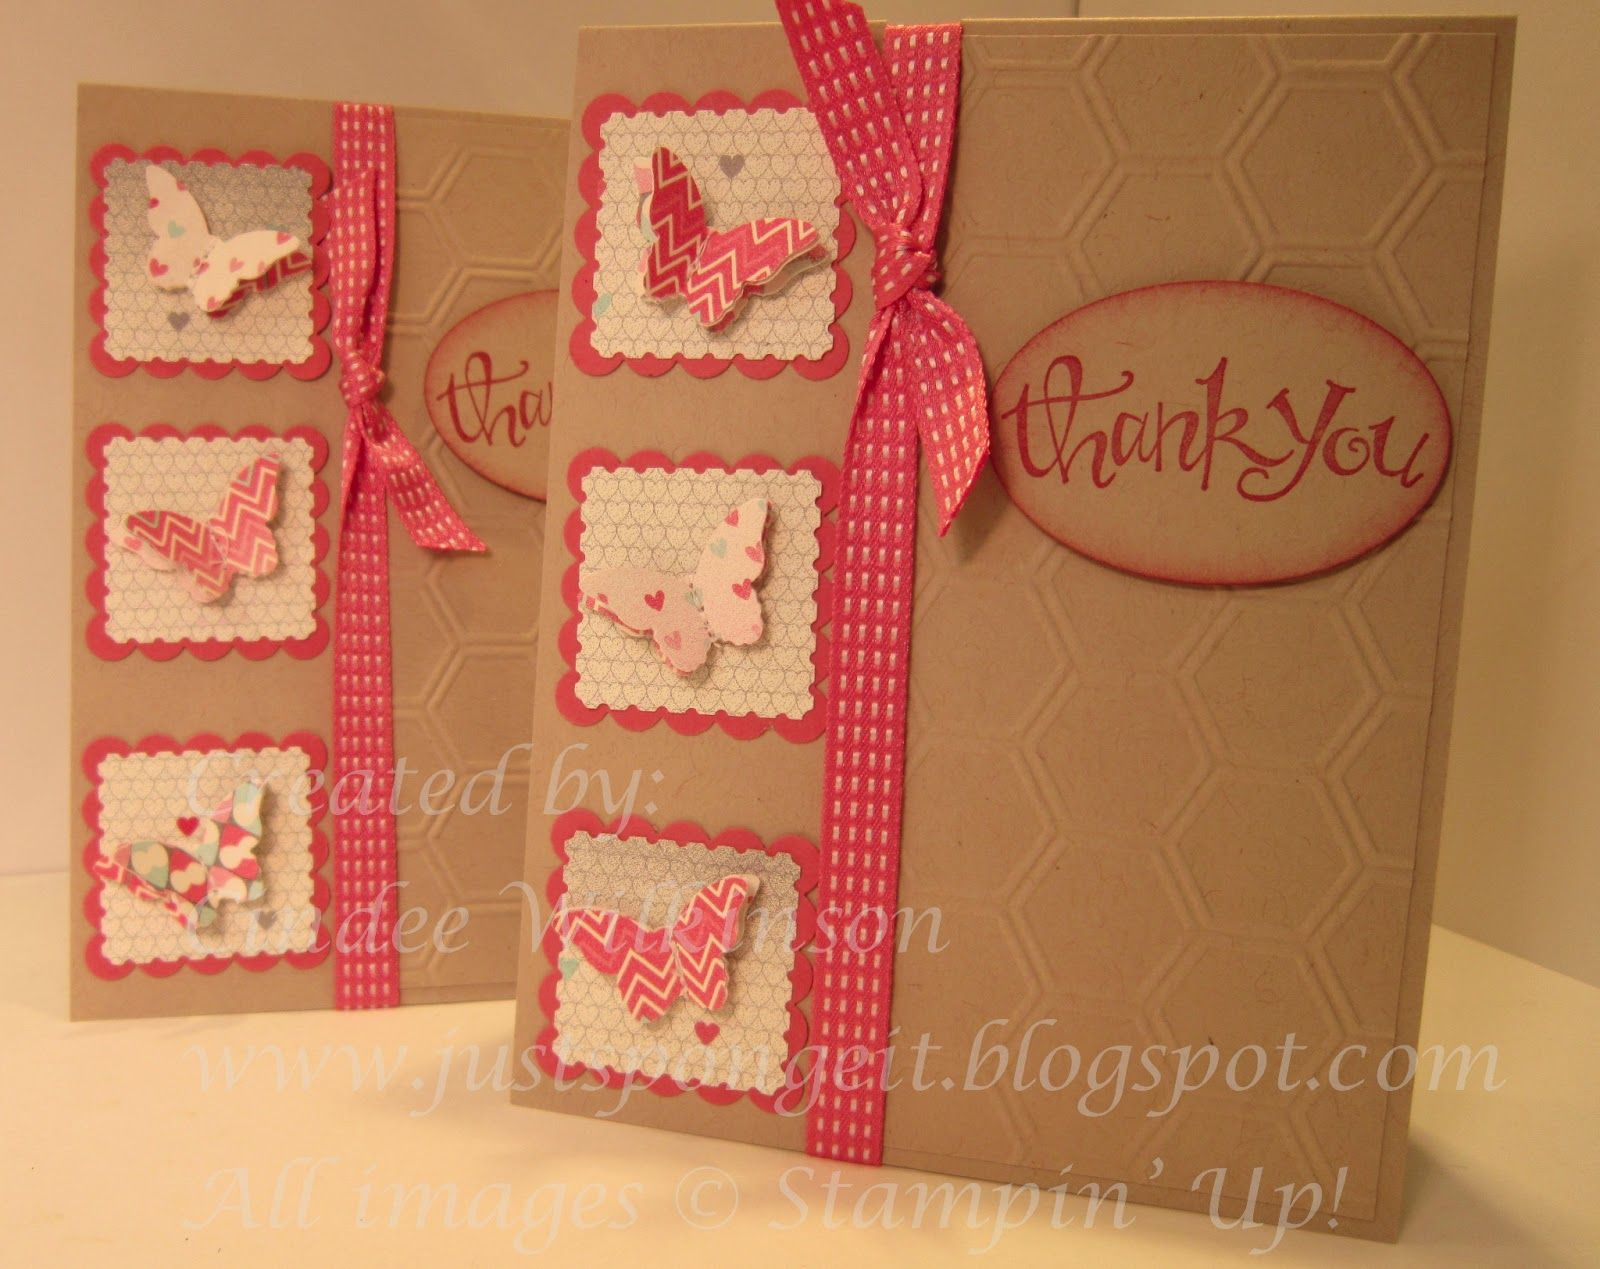 Just Sponge It: Valentine Square Swaps Turned into Cards